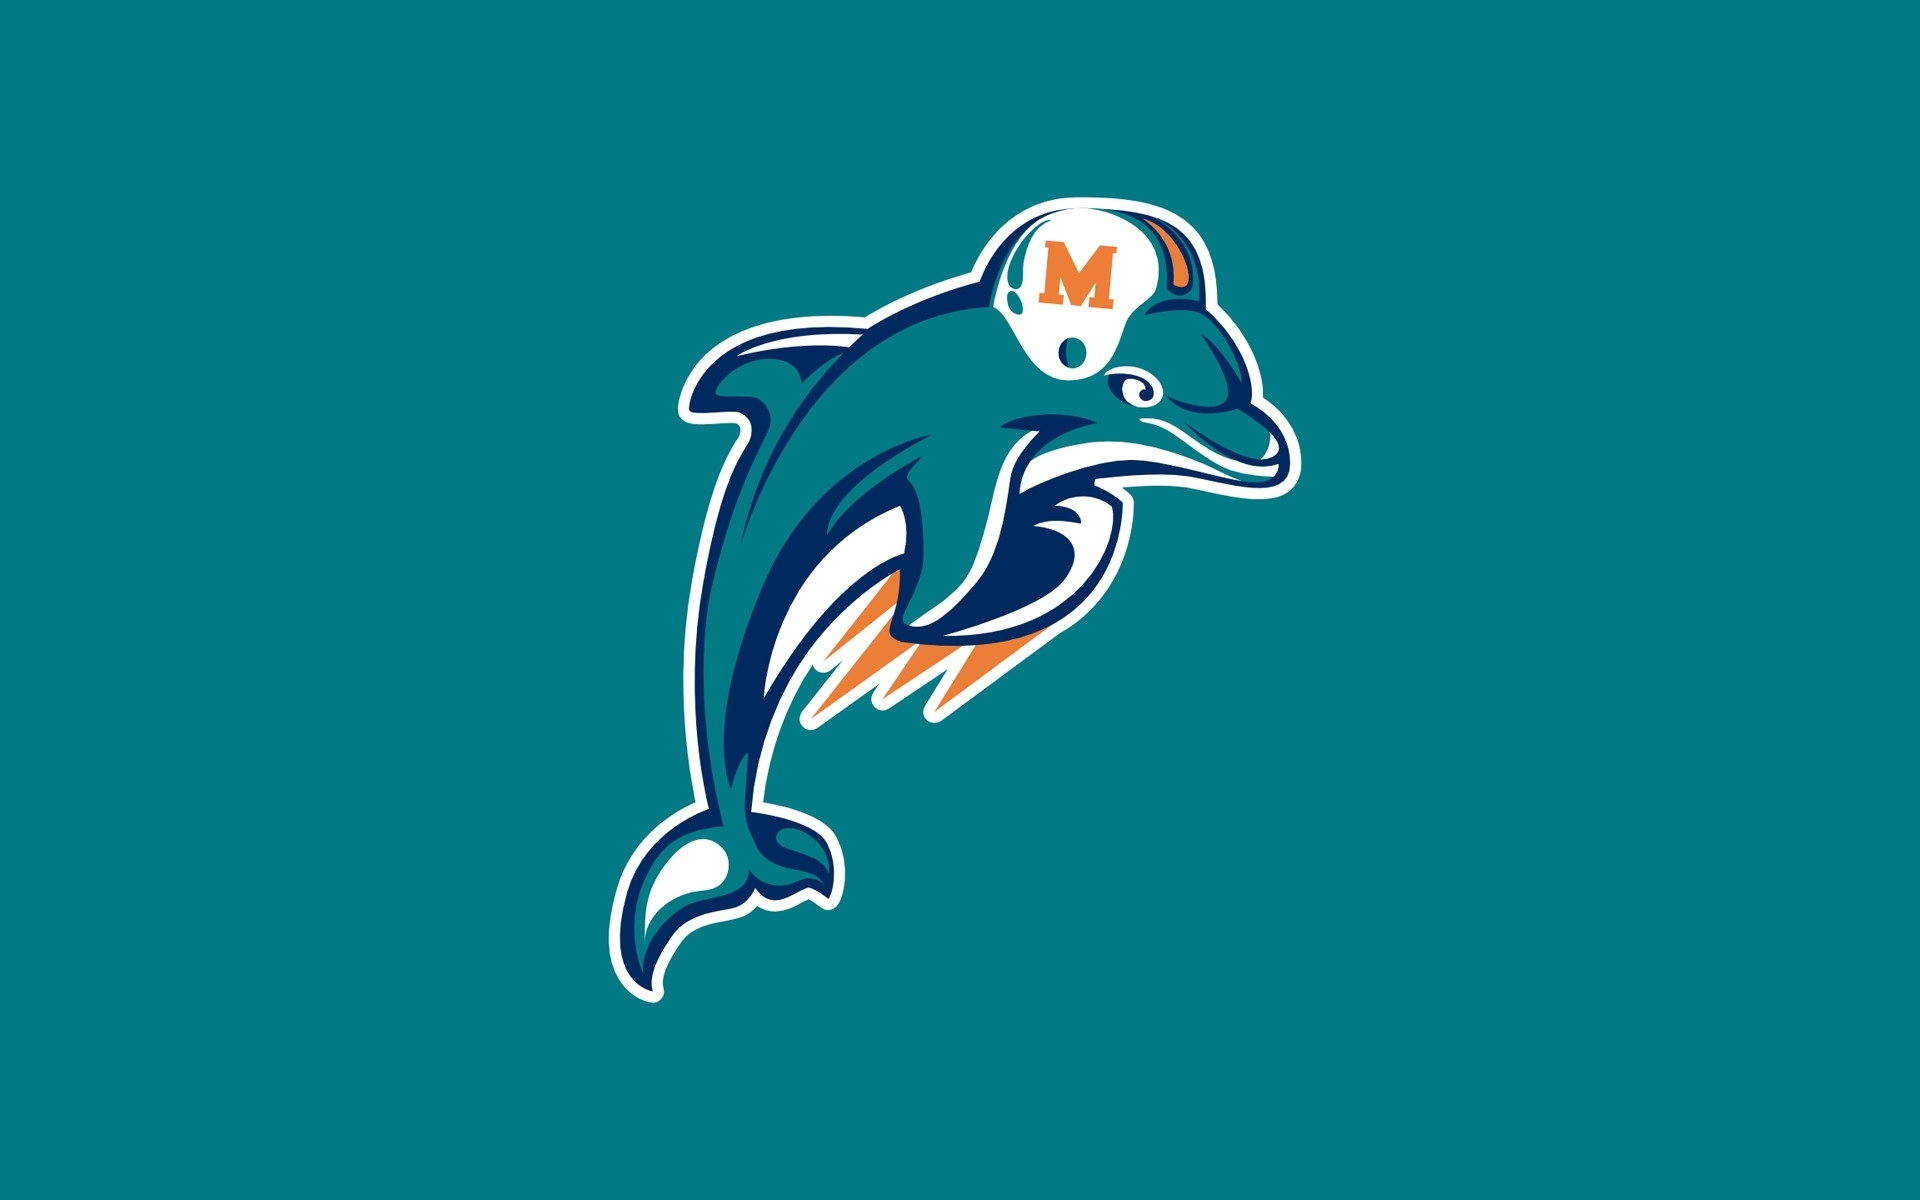 miami dolphins new logo wallpaper (66+ images)